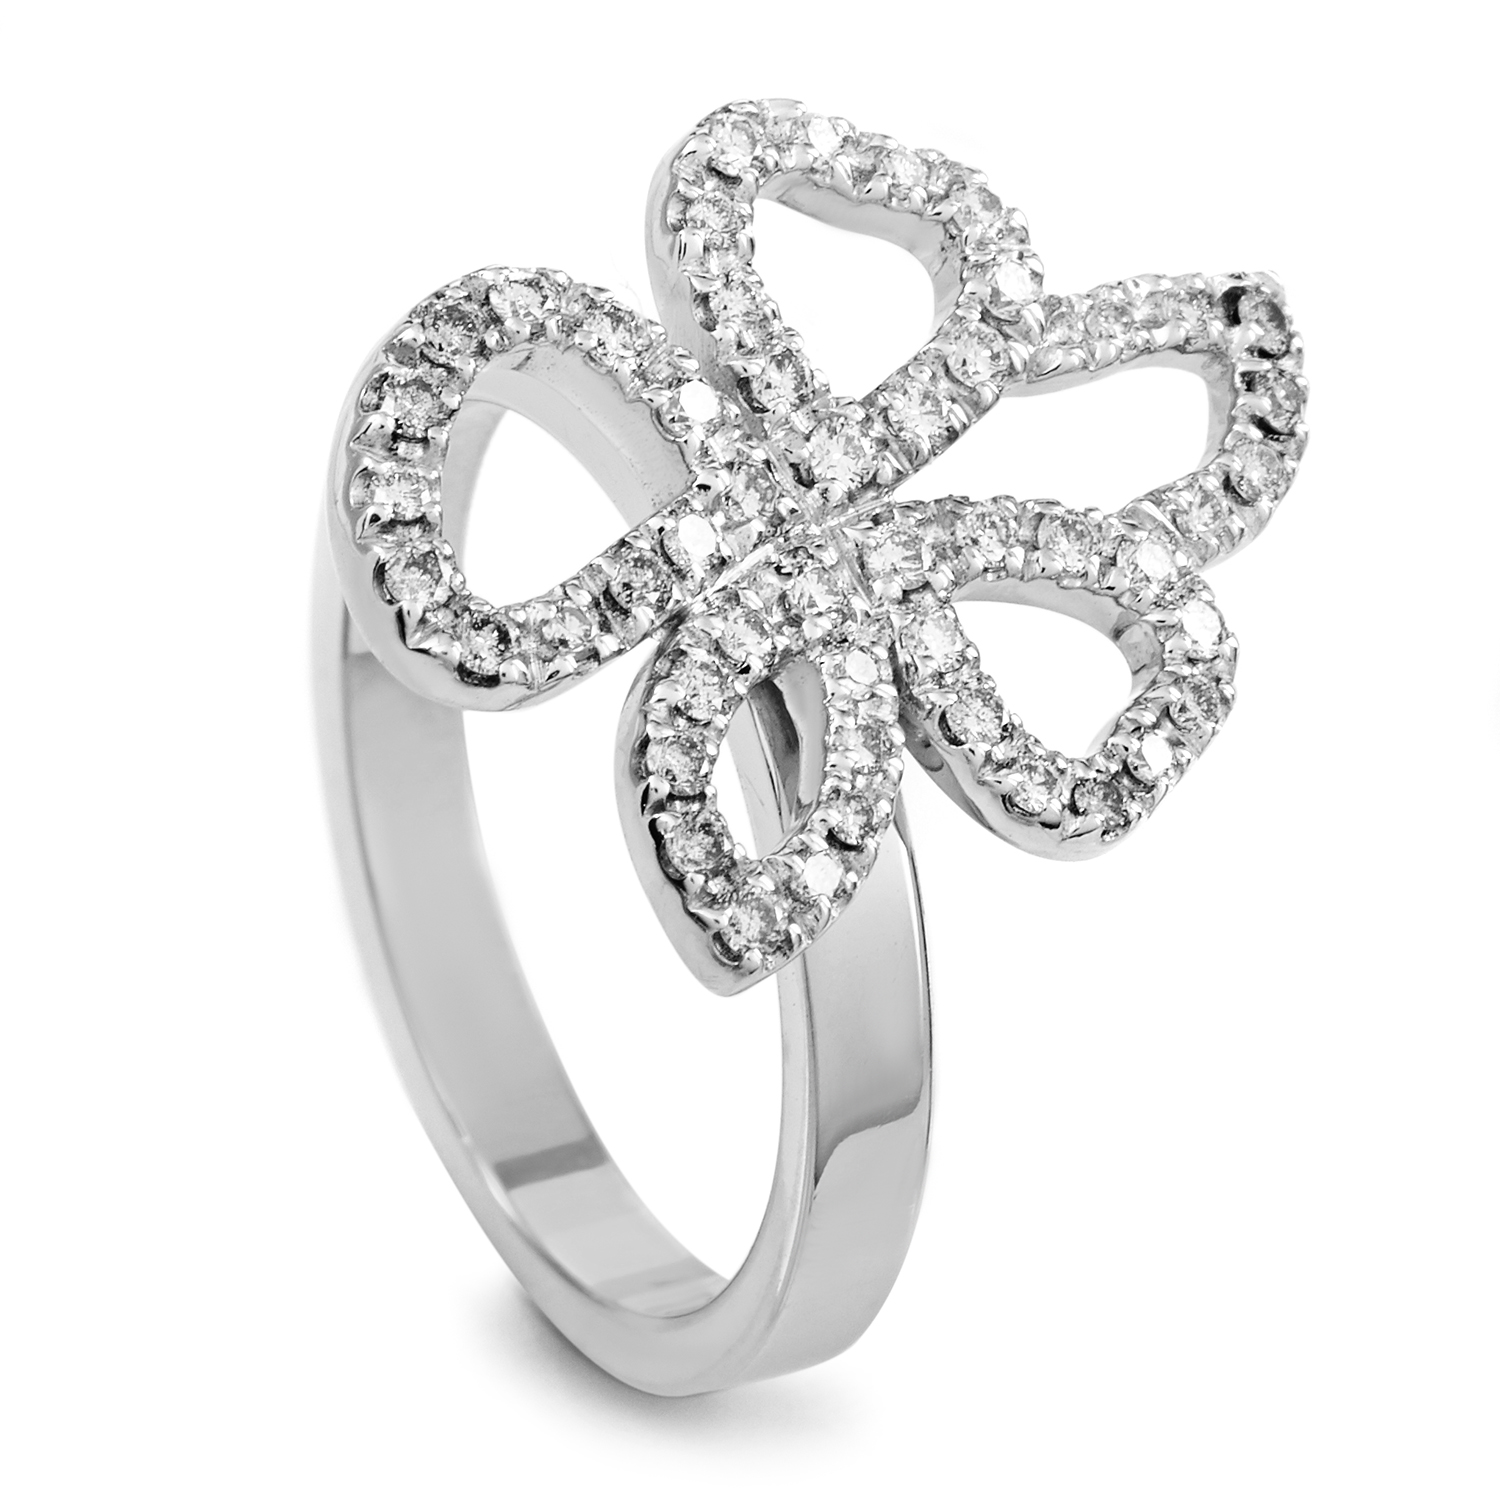 Gucci Women's 18K White Gold Movable Diamond Flower Ring